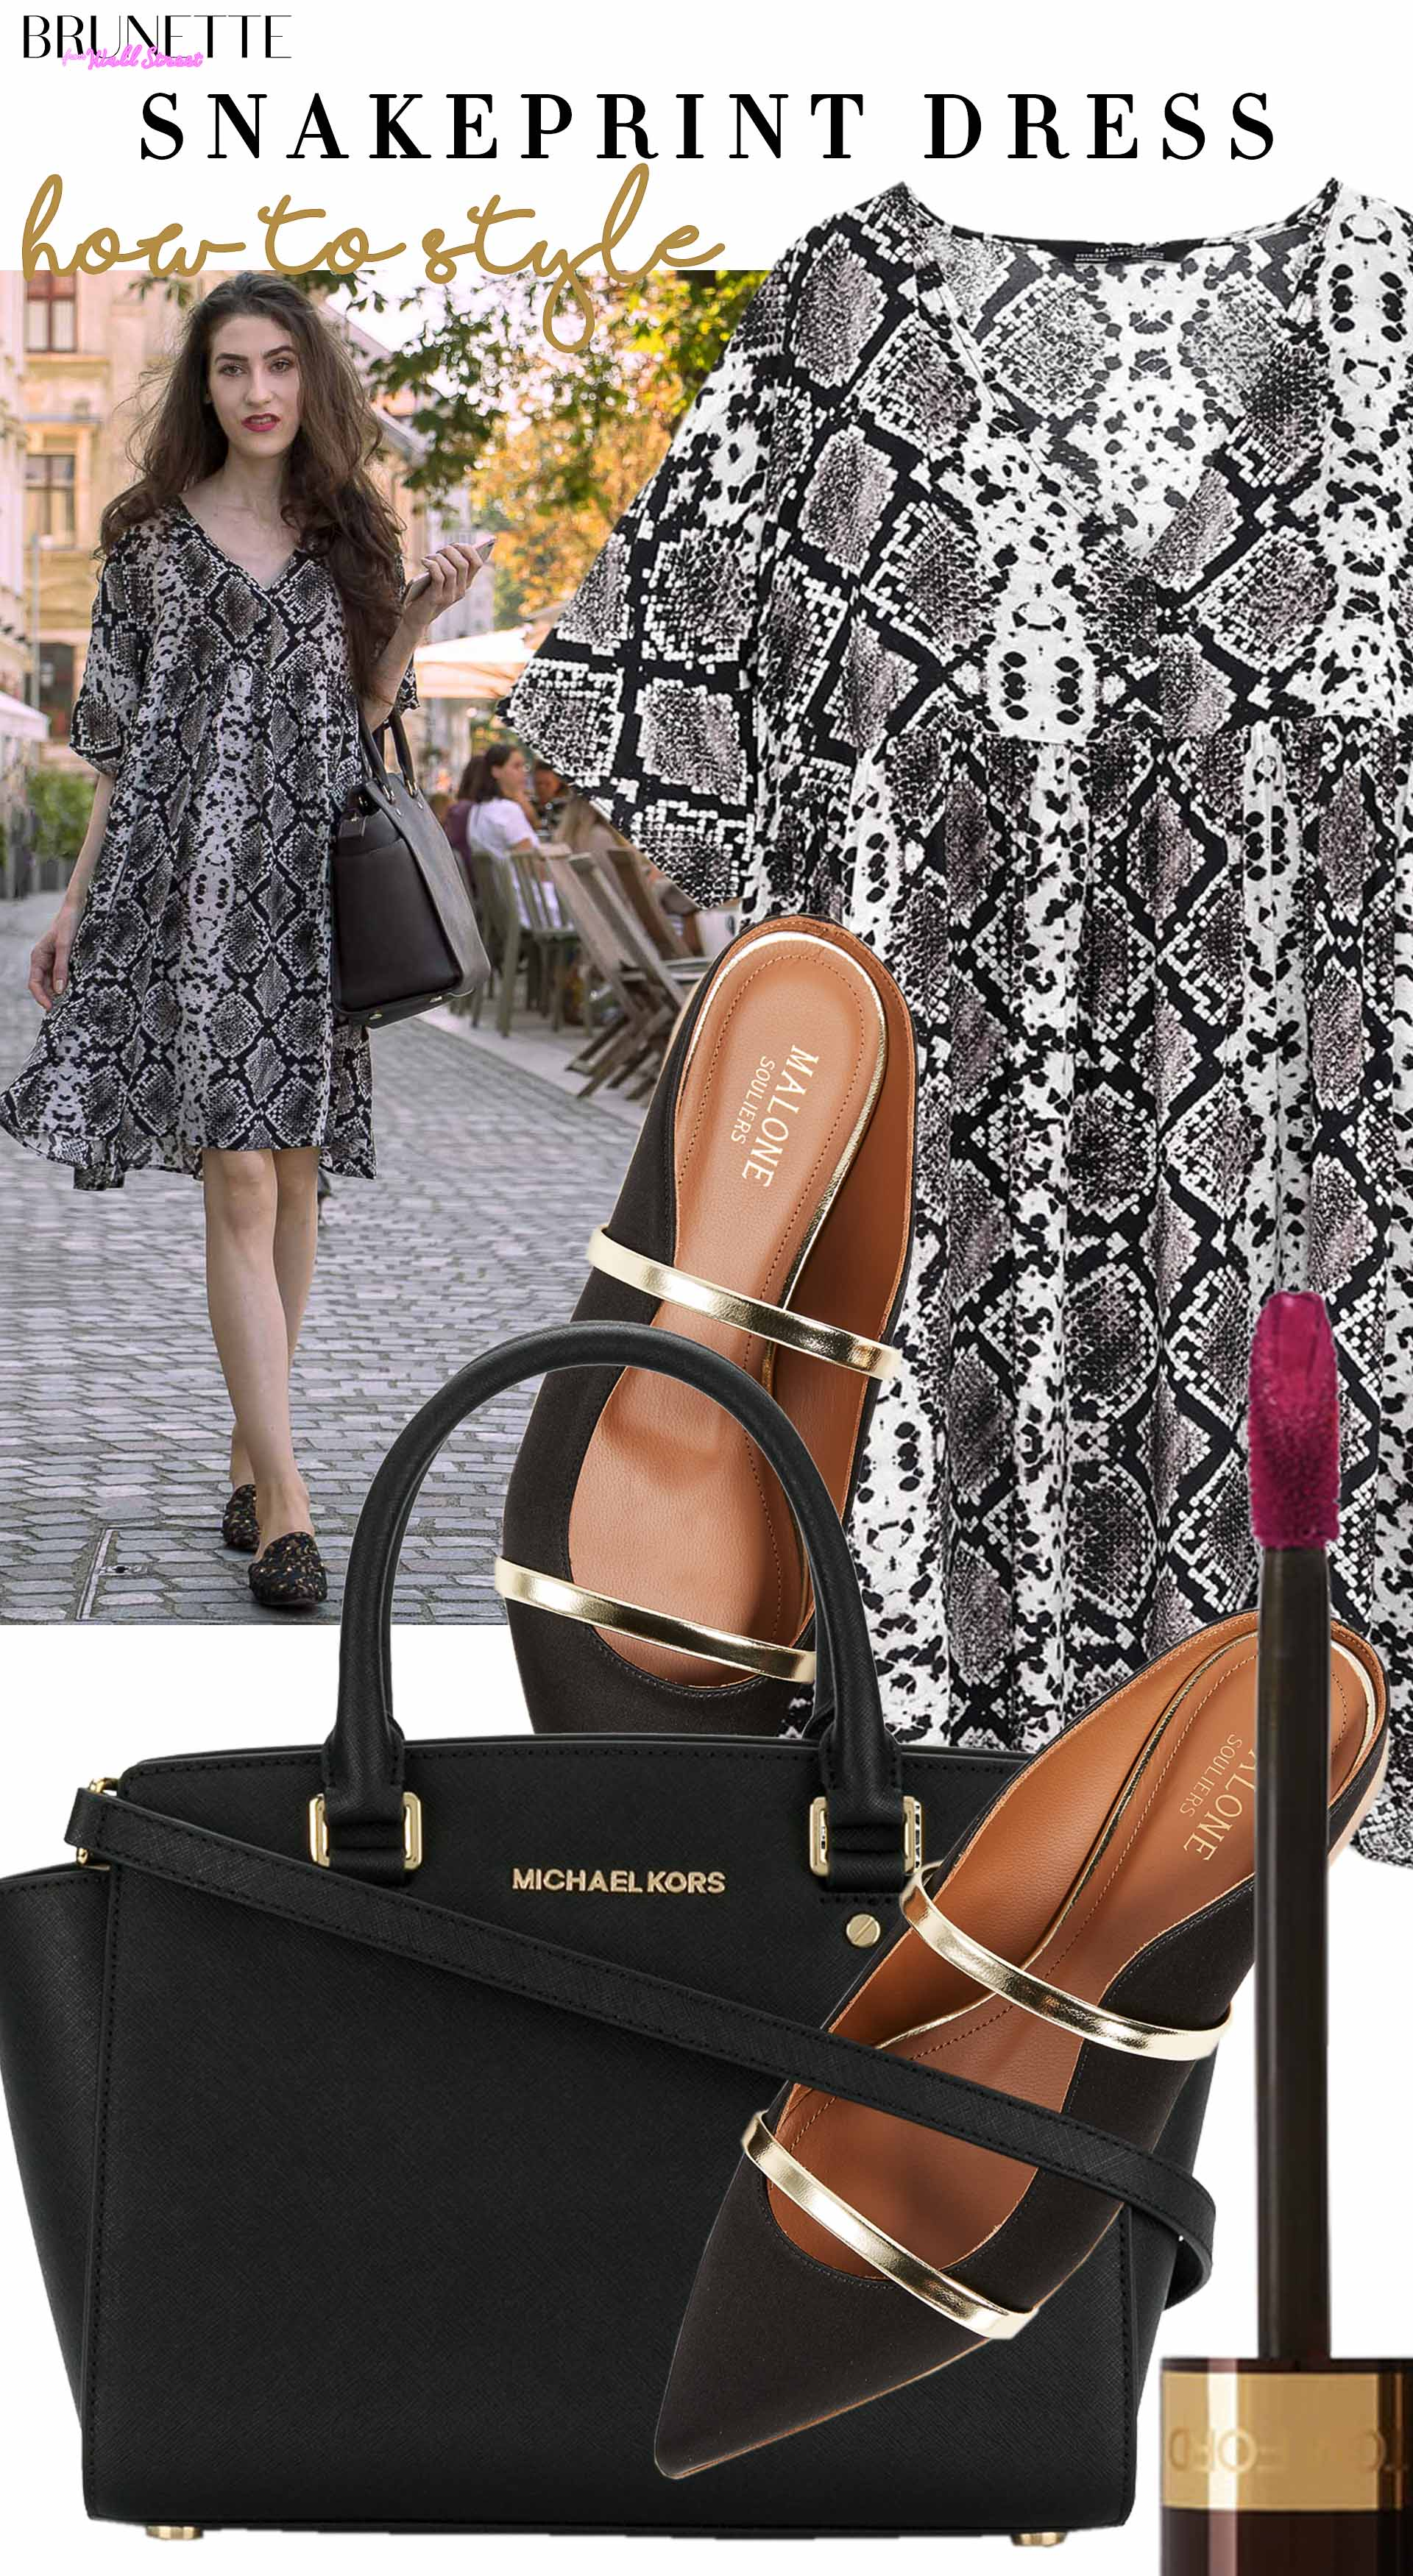 Brunette from Wall Street how to style short boho snakeskin print dress malone souliers mules michael kors bag